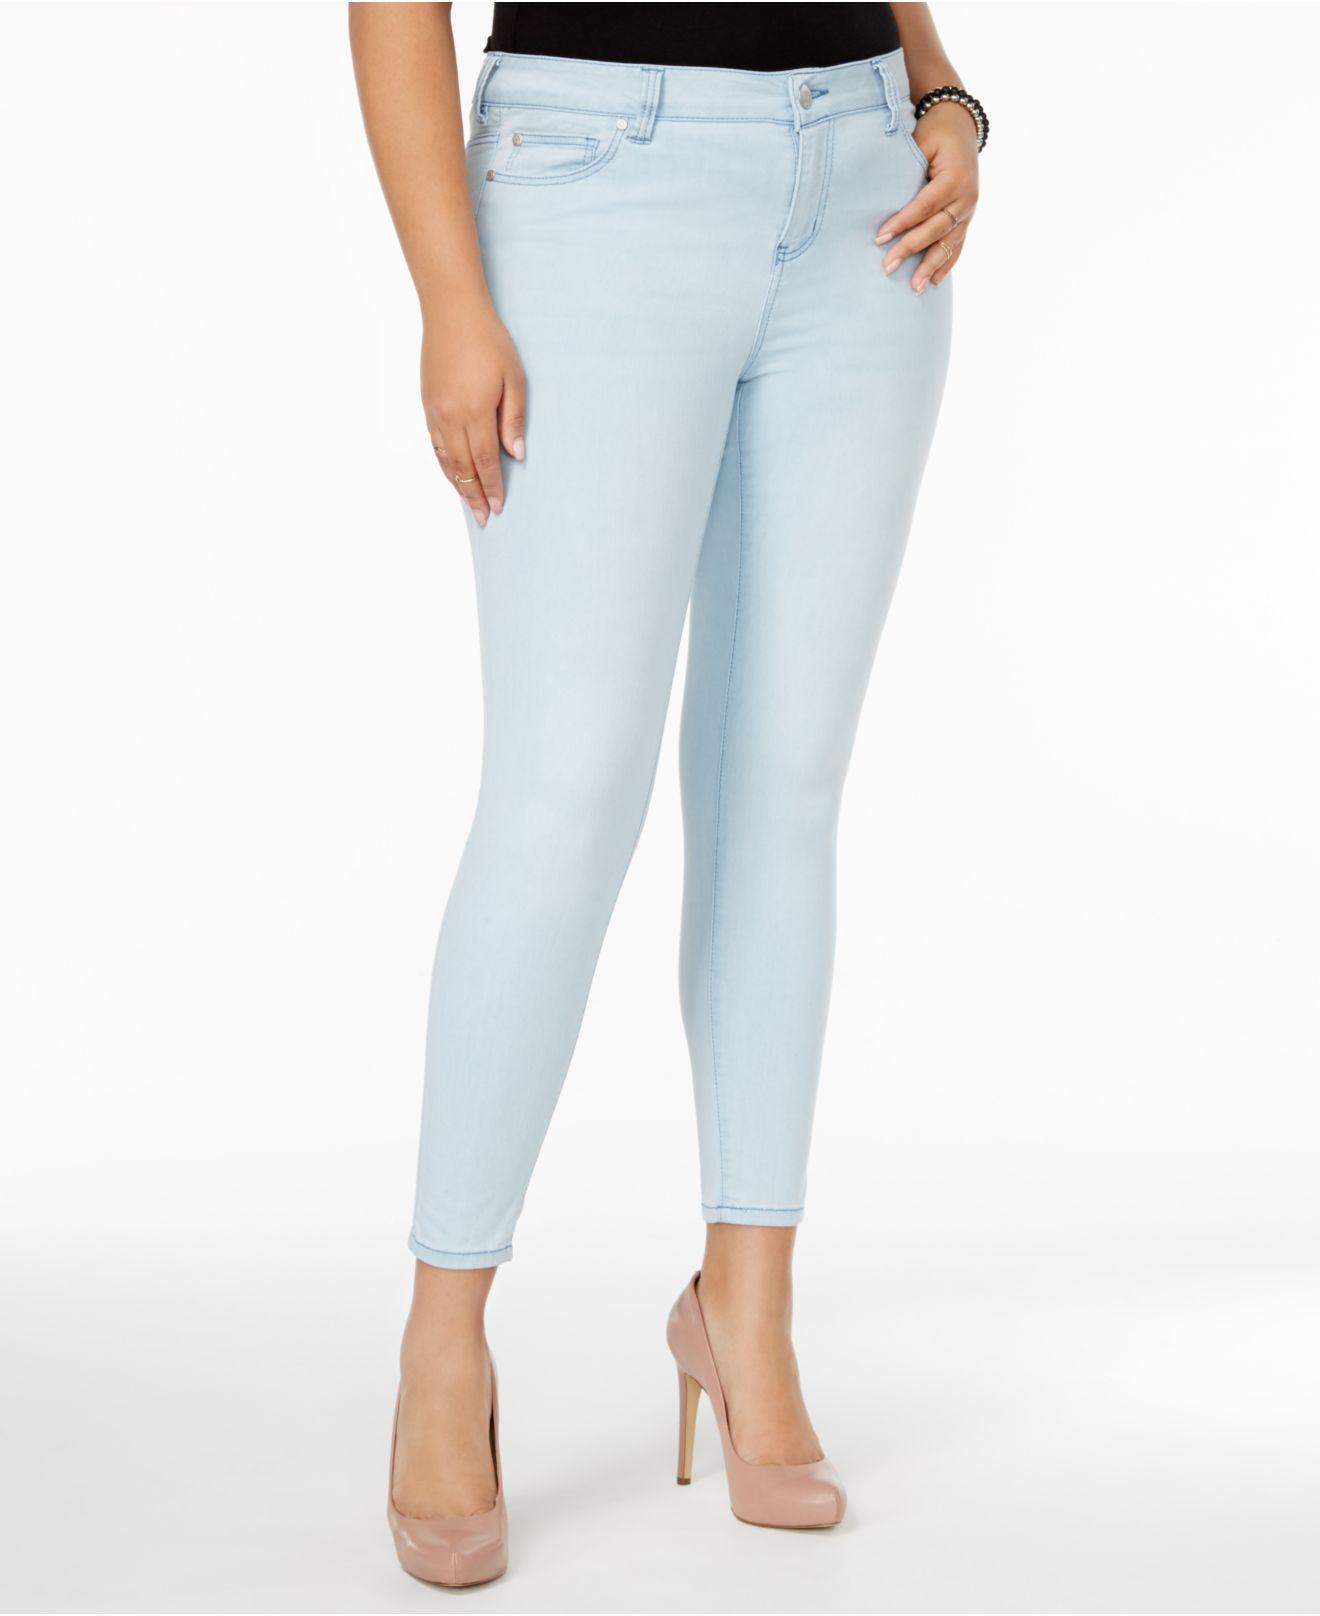 83b0bdbcdfb Celebrity Pink. Women s Blue Plus Size Outsiders Wash Super-soft Skinny  Jeans